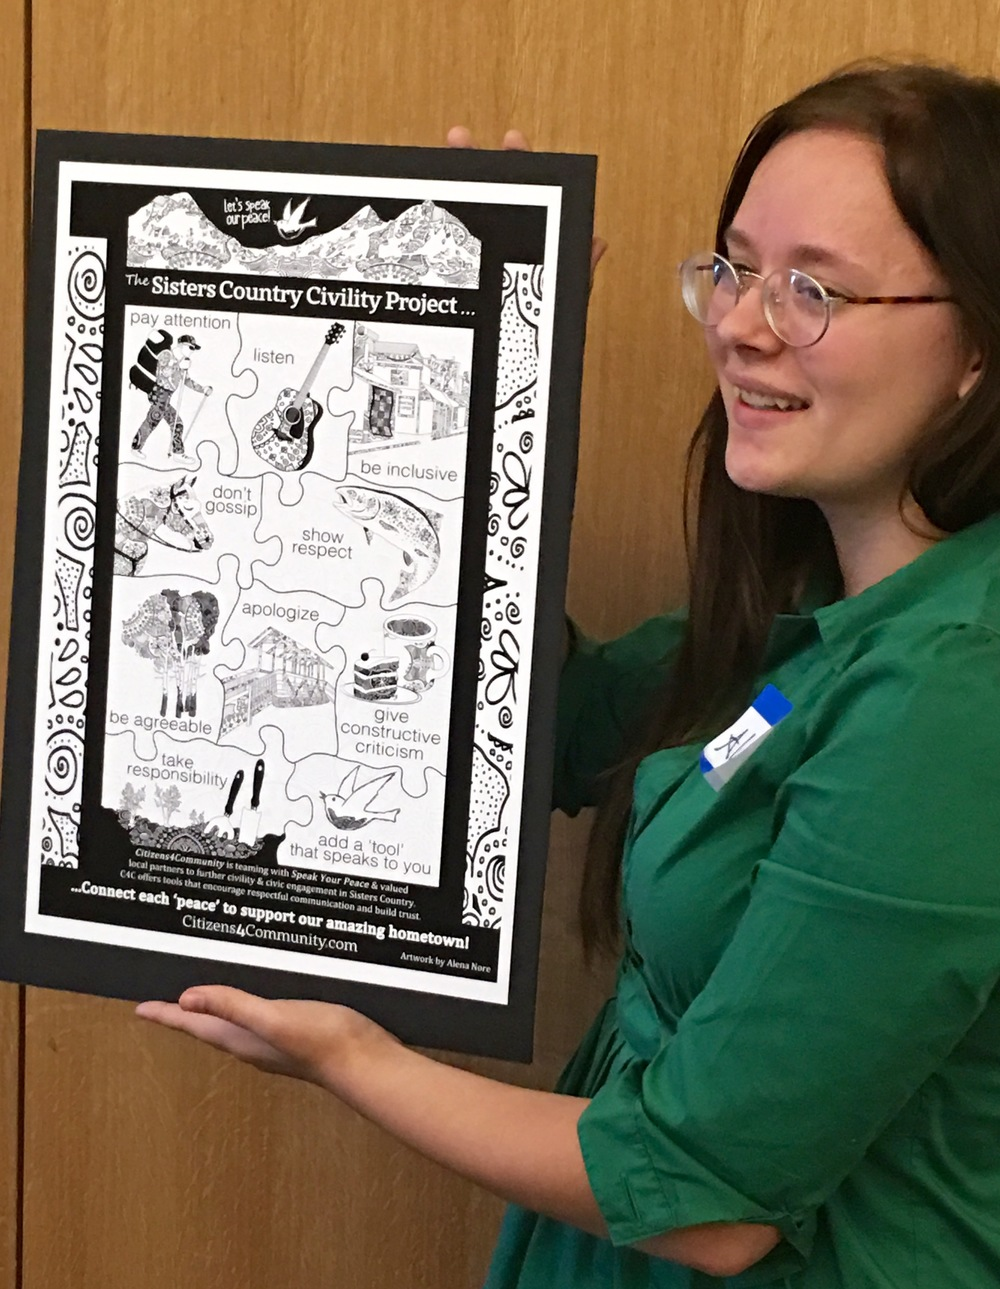 Alena Nore presents her Sisters Country Civility Project poster artwork on July 12 at the Sisters Fire Hall during C4C's quarterly information and learning session.